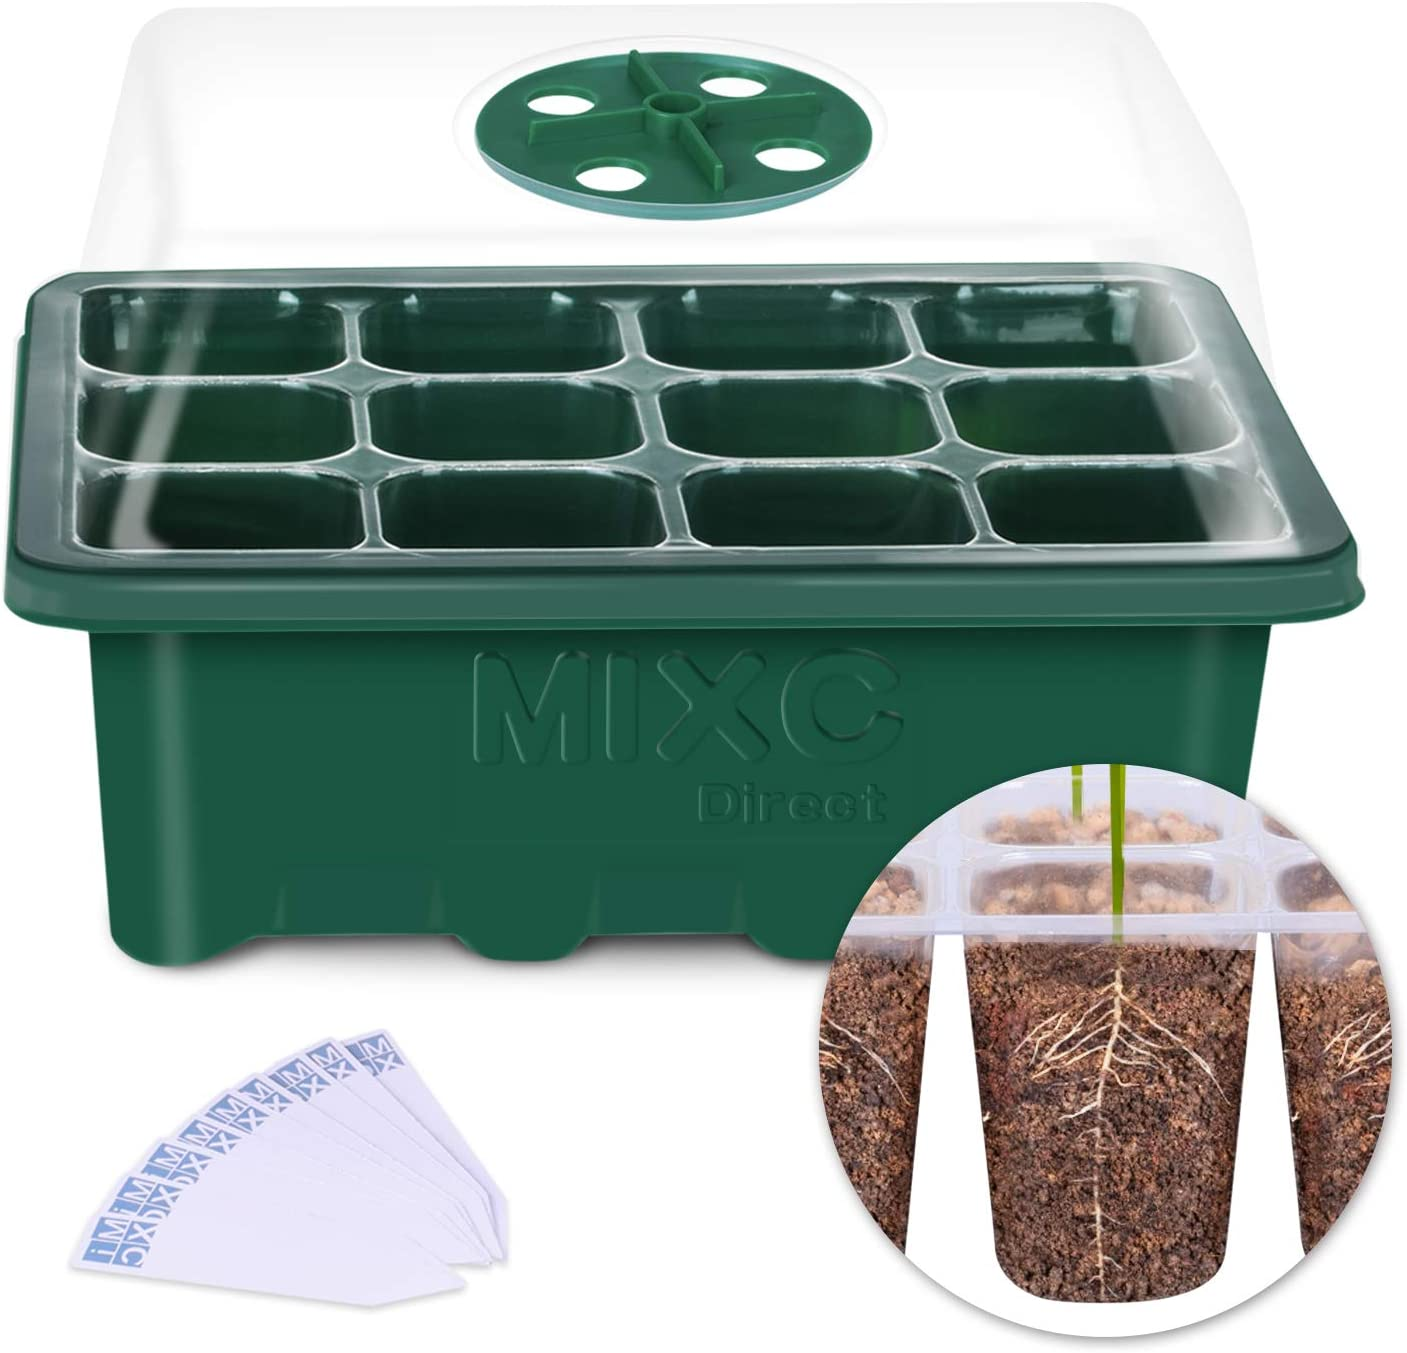 10-Pack Seed Trays Seedling Starter Tray, MIXC Humidity Adjustable Plant Starter Kit with Dome and Base Greenhouse Grow Trays Mini Propagator for Seeds Growing Starting (12 Cells per Tray) 712Buxz0WjHL